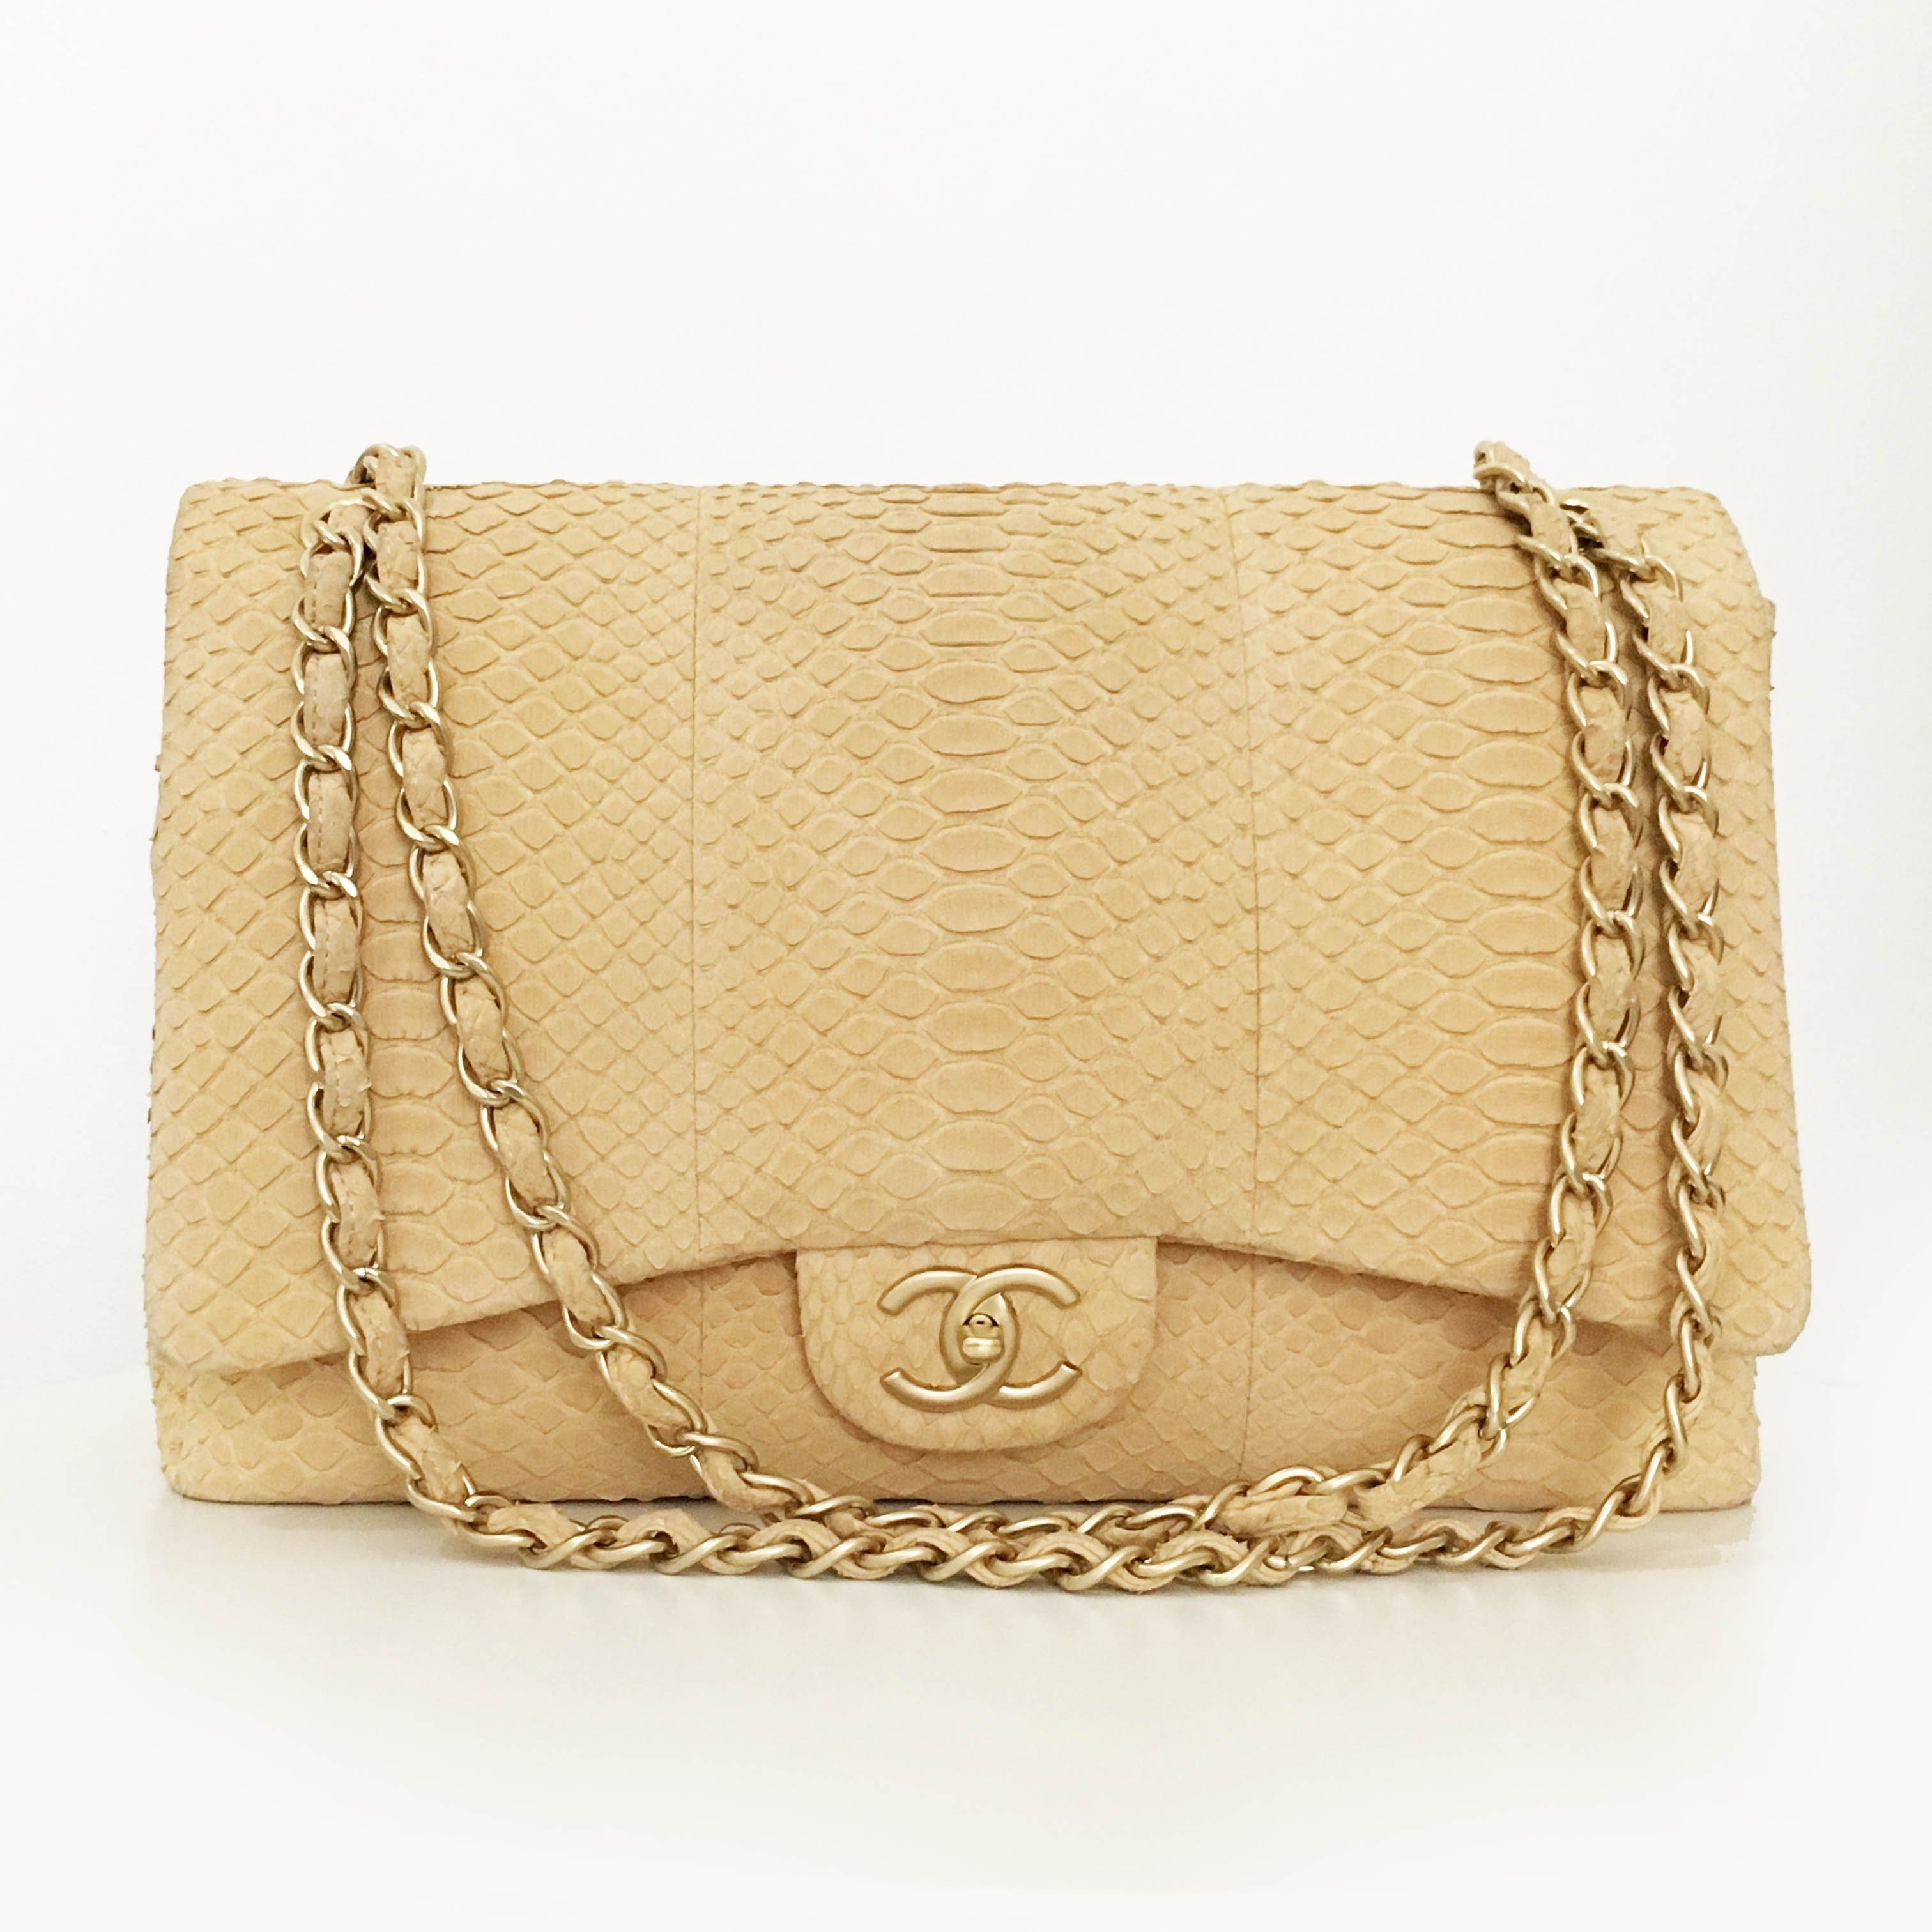 Chanel Double Flap Python Maxi Bag